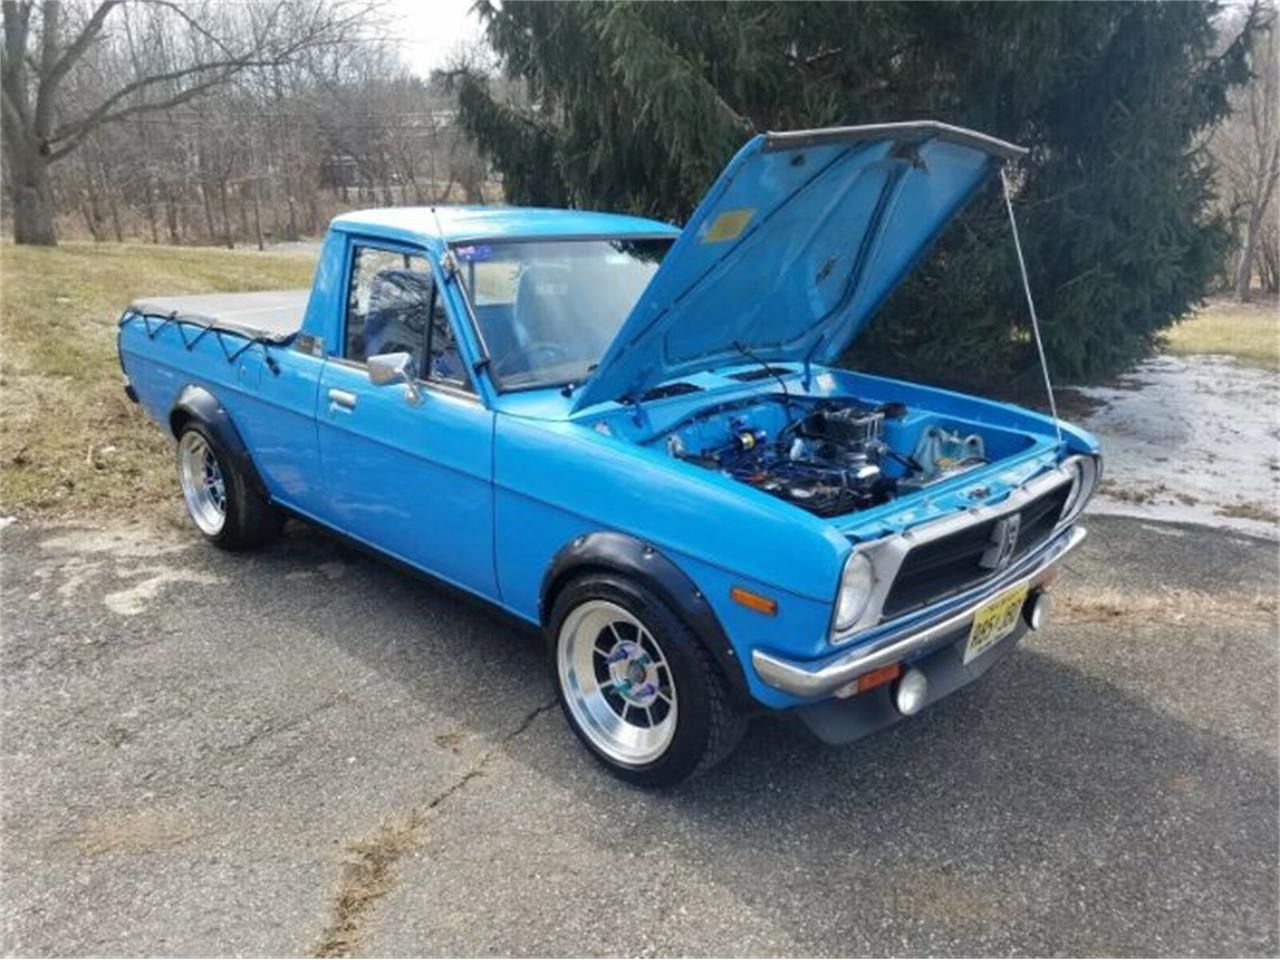 Upgraded 1980 Datsun Pickup Truck Imported From Australia